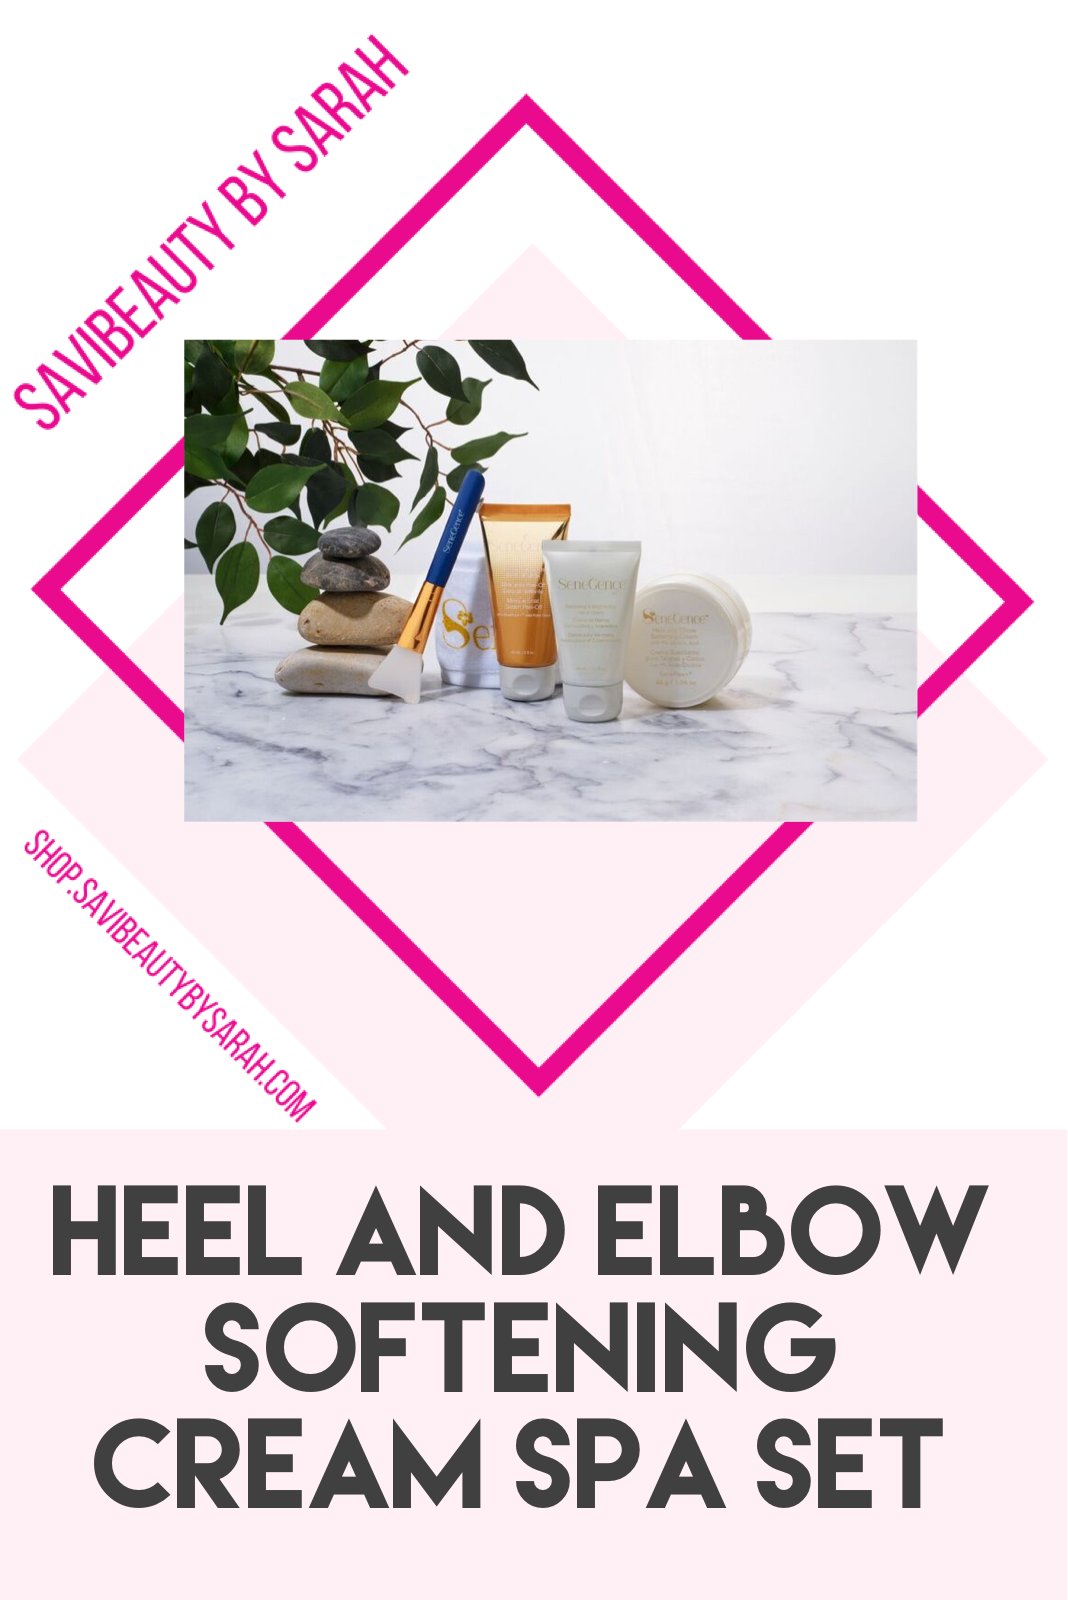 New SeneGence Product Heel and Elbow Softening Cream